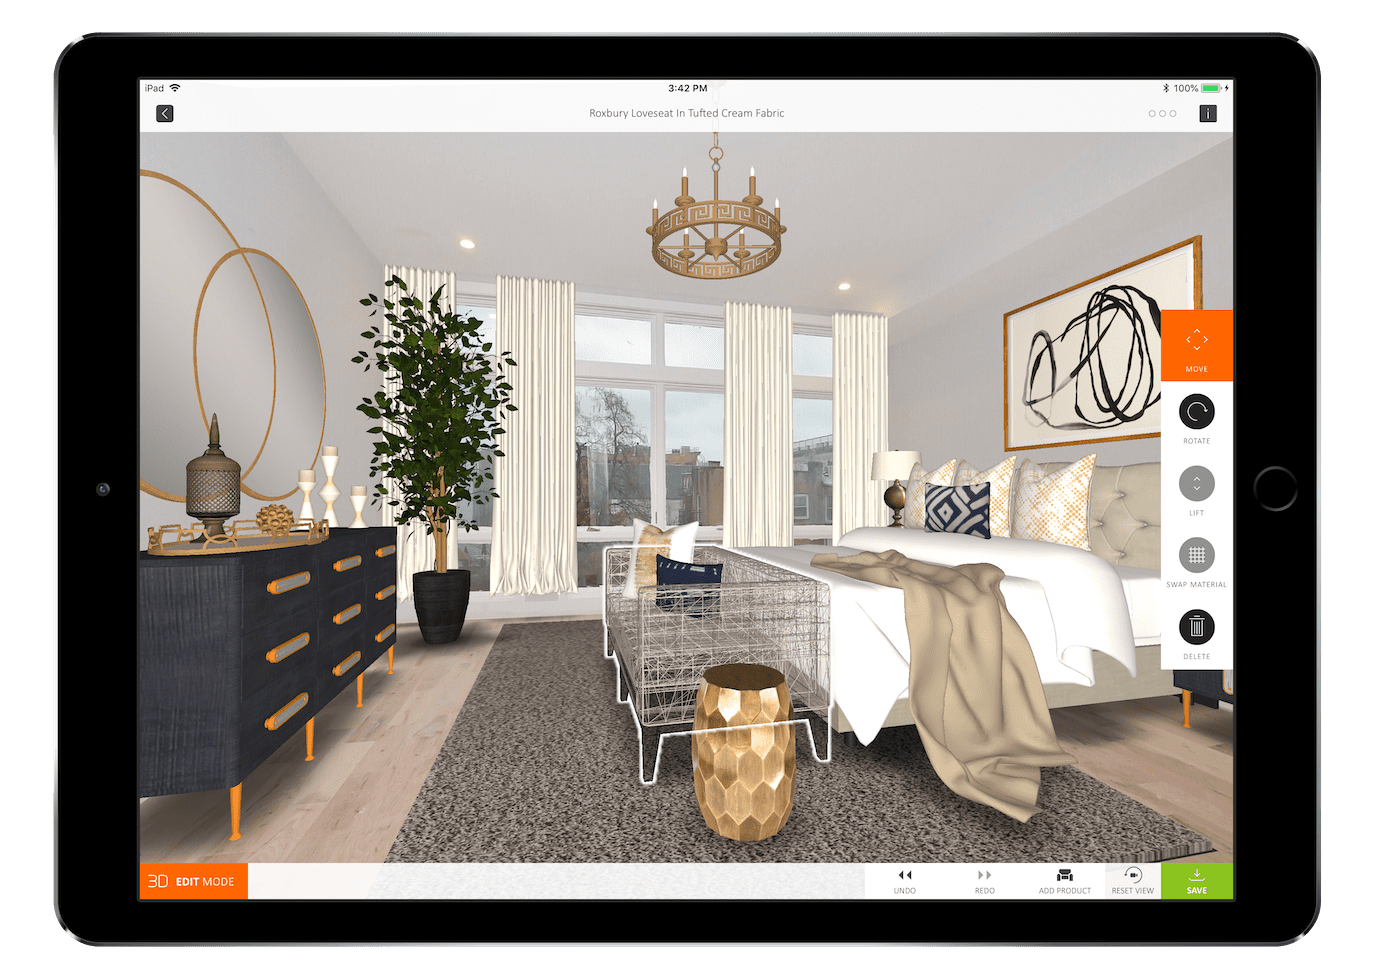 3D, Augmented and Virtual Reality Interior Design Apps